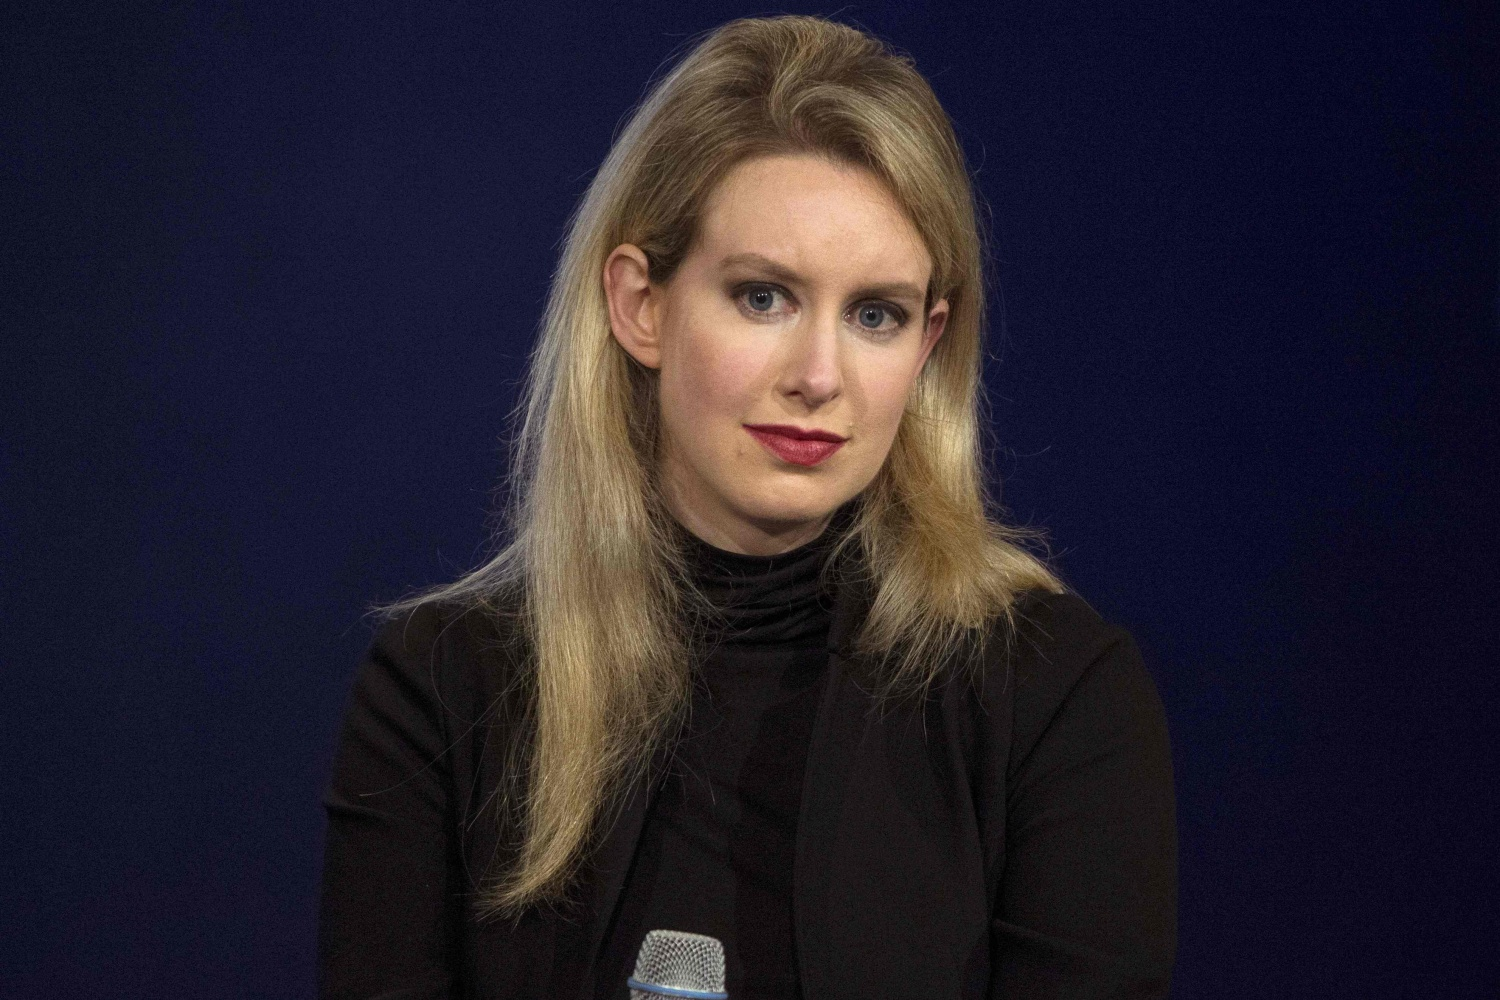 Theranos to close all clinical labs, lay off 340